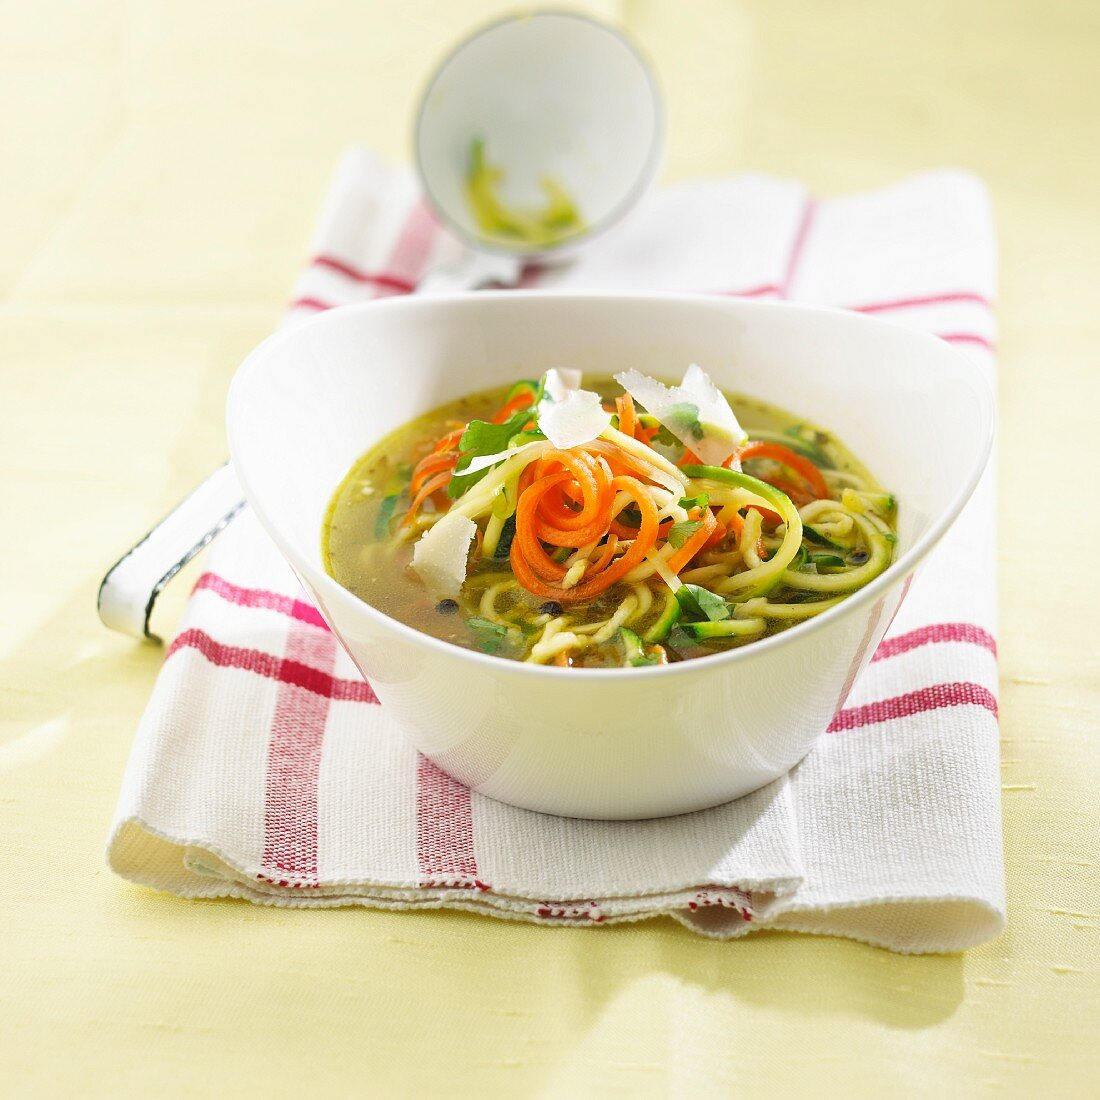 Minestrone with courgette spaghetti and Parmesan